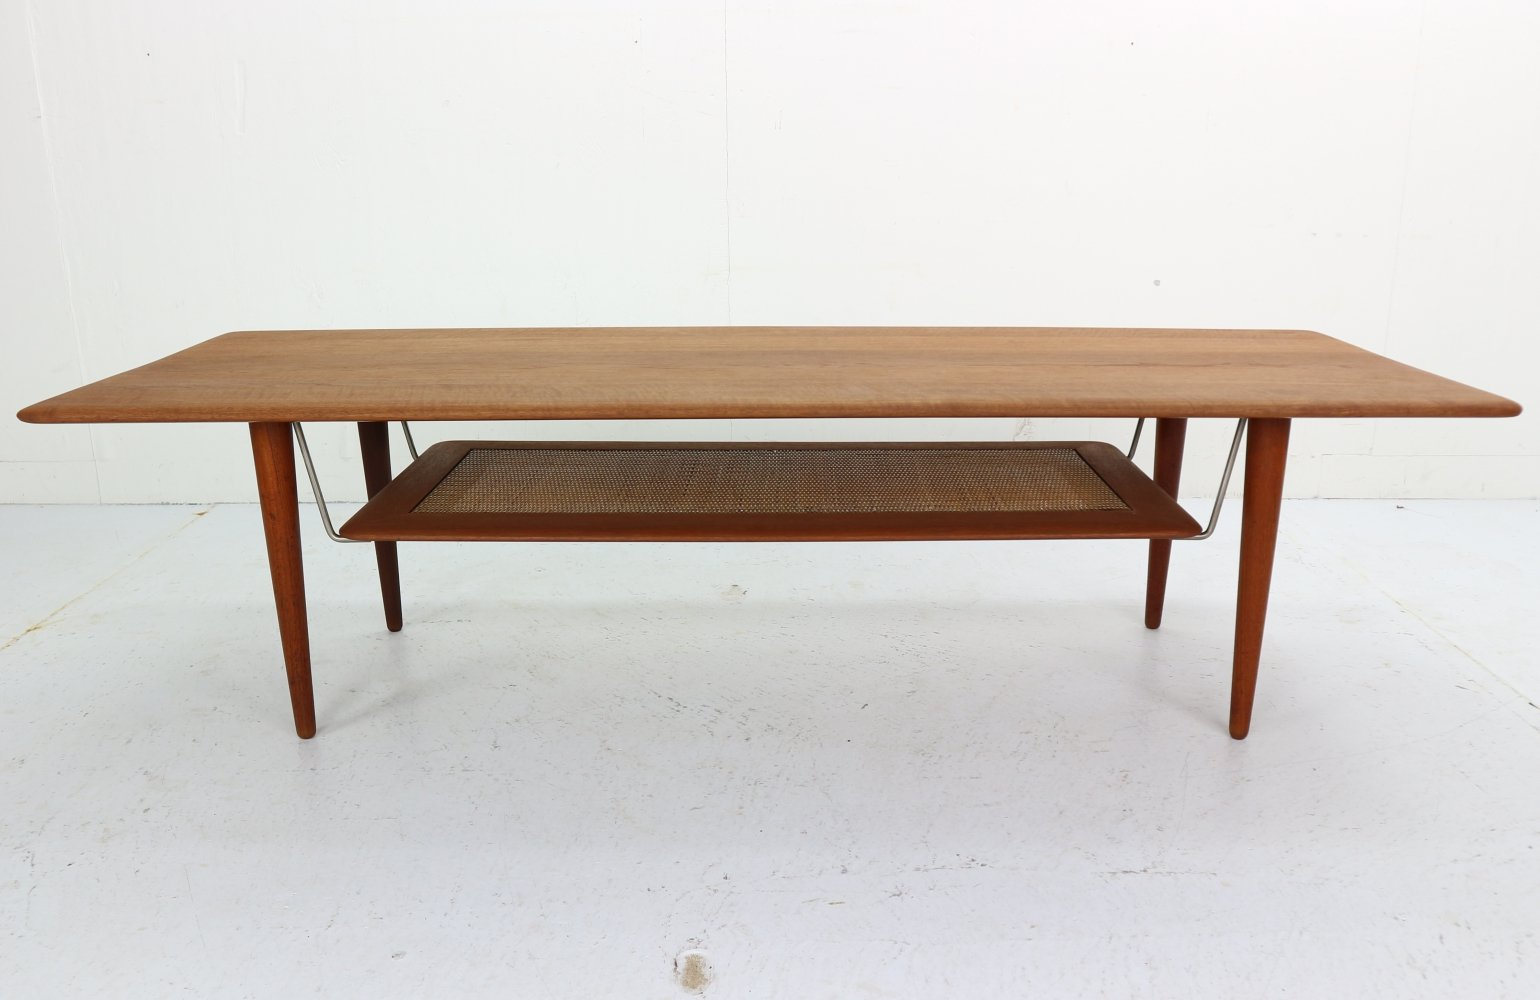 M-FD516 Coffee Table with Cane Shelf by Peter Hvidt & Orla Mølgaard Nielsen, 1956